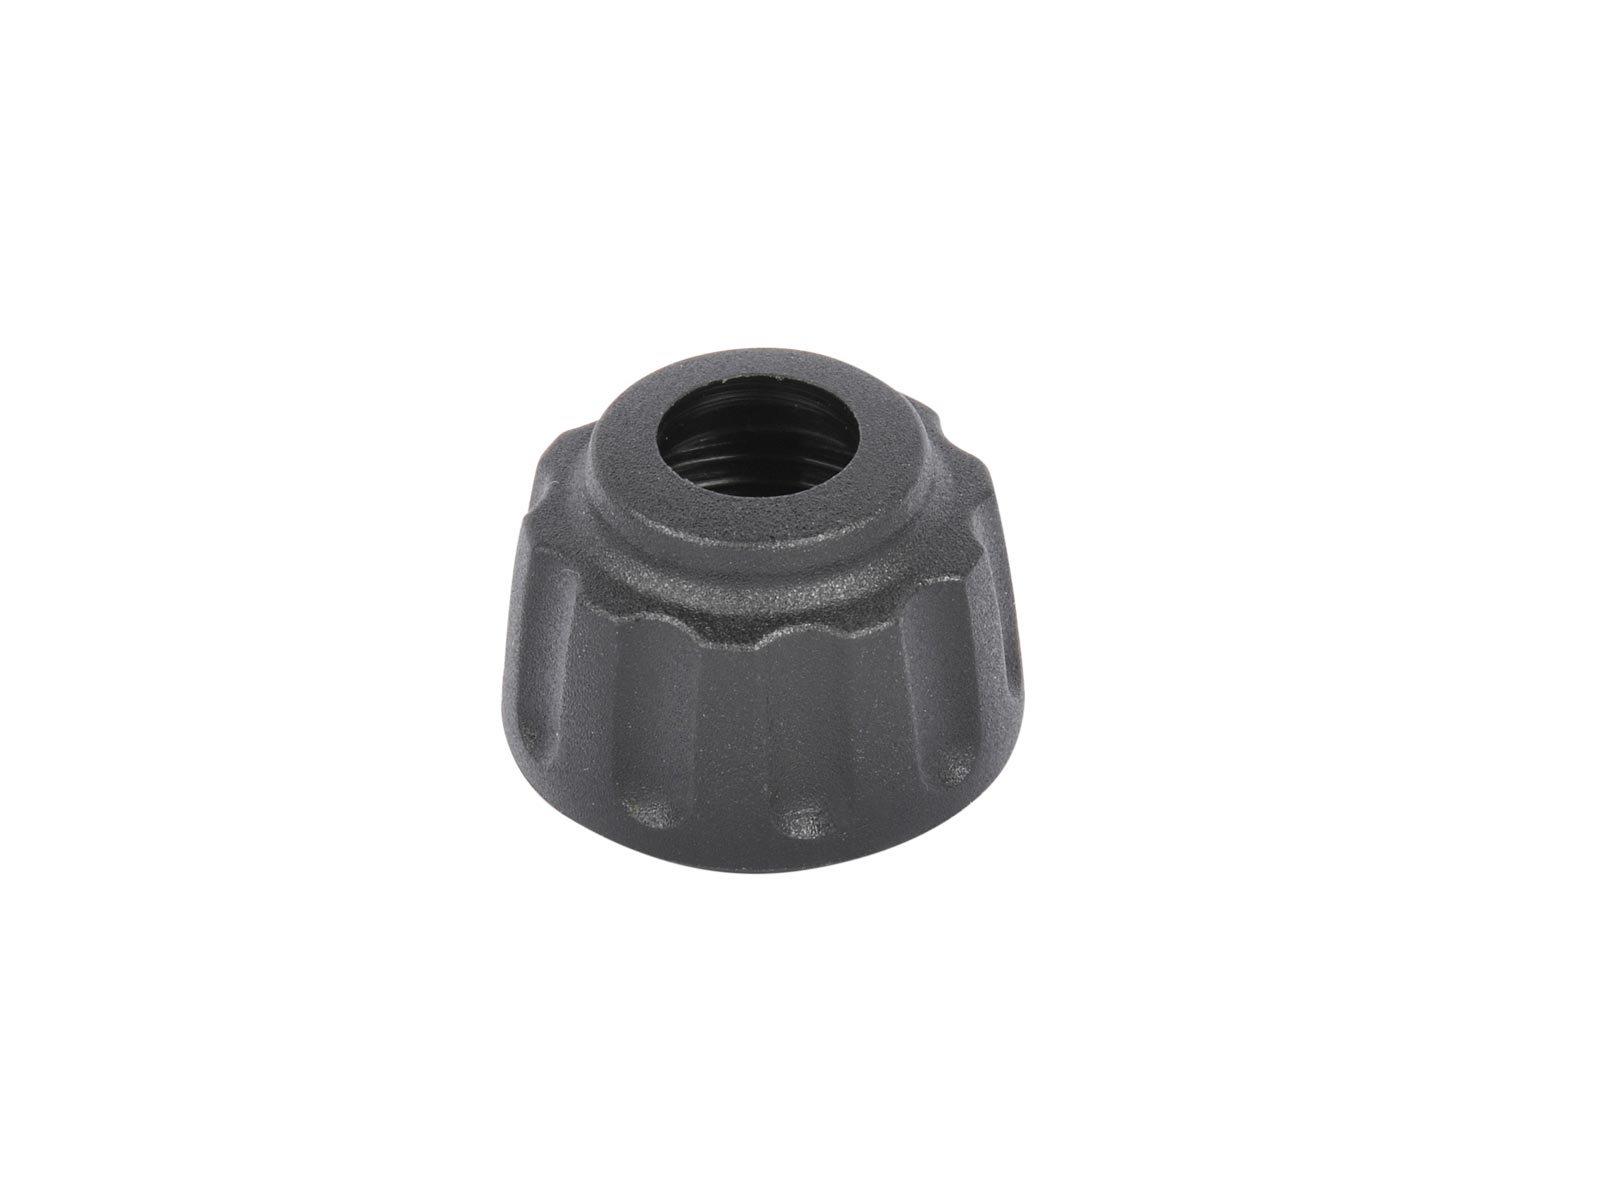 Hozelock Adaptor Nut